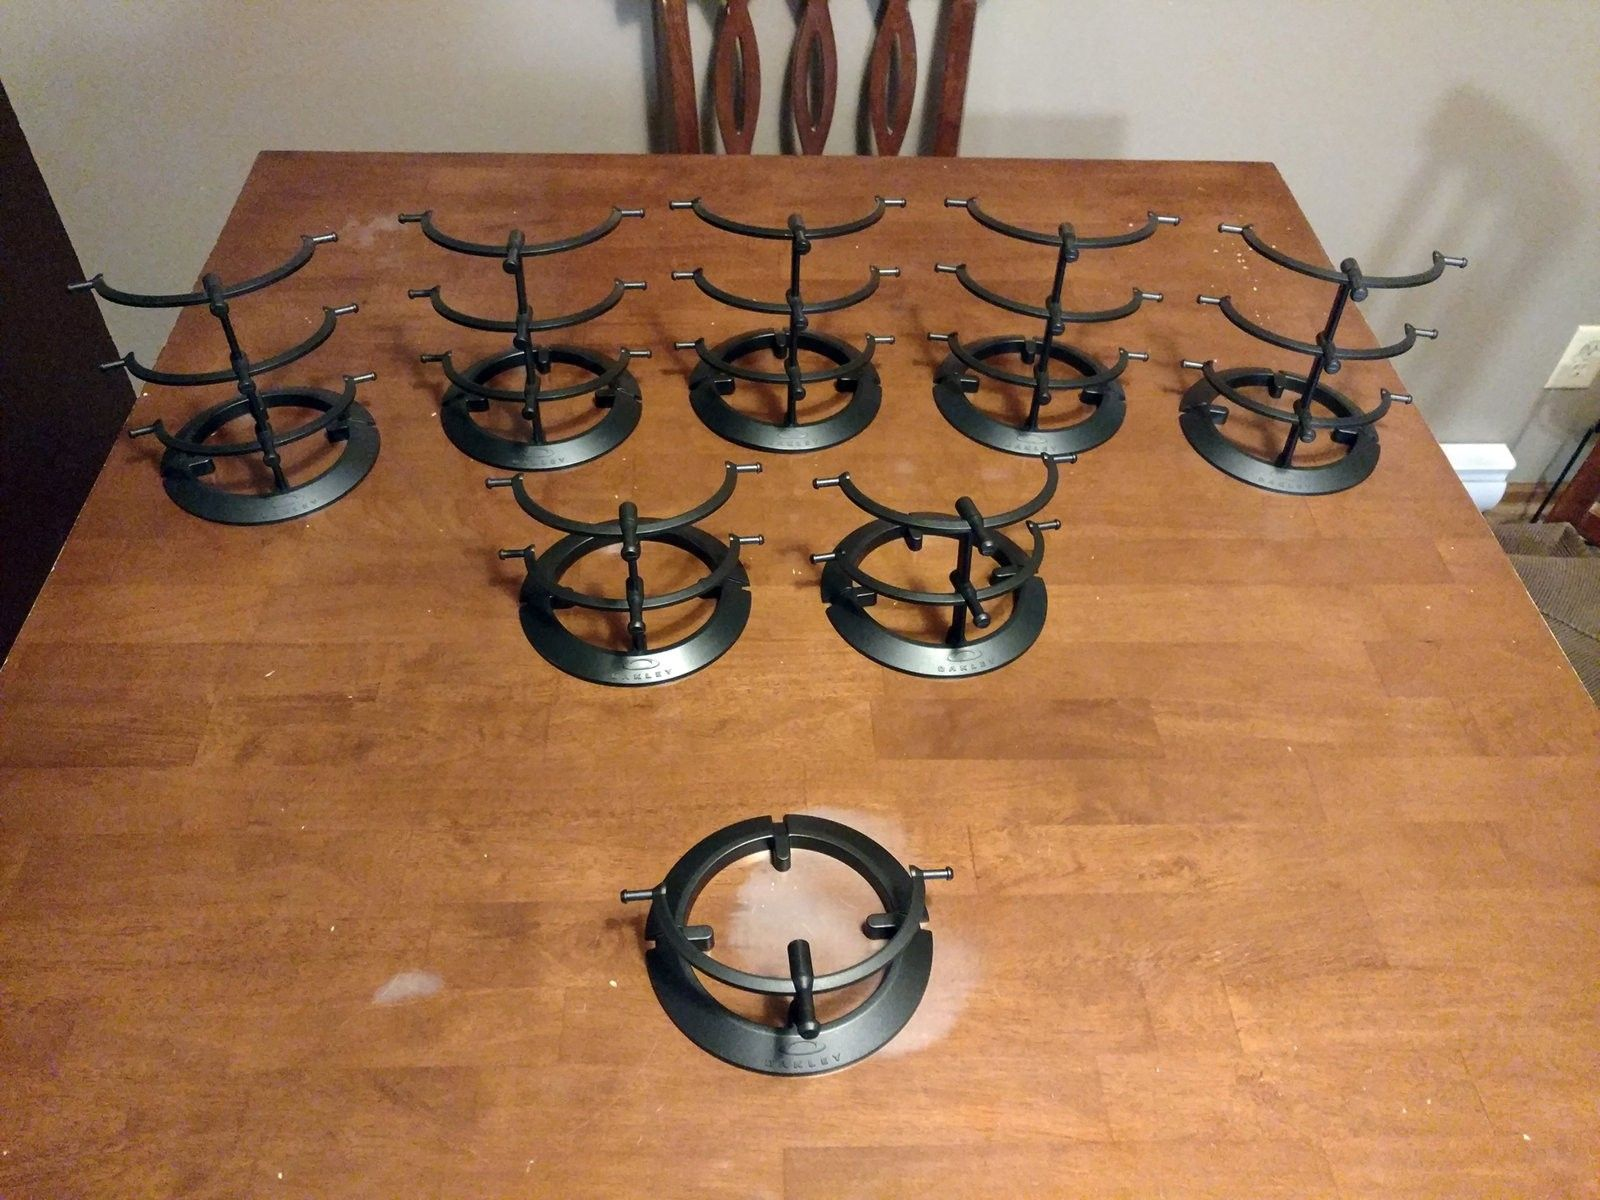 Large lot of black plastic stands: 1, 2, & 3-tier - 2016-02-17 22.40.51.jpg